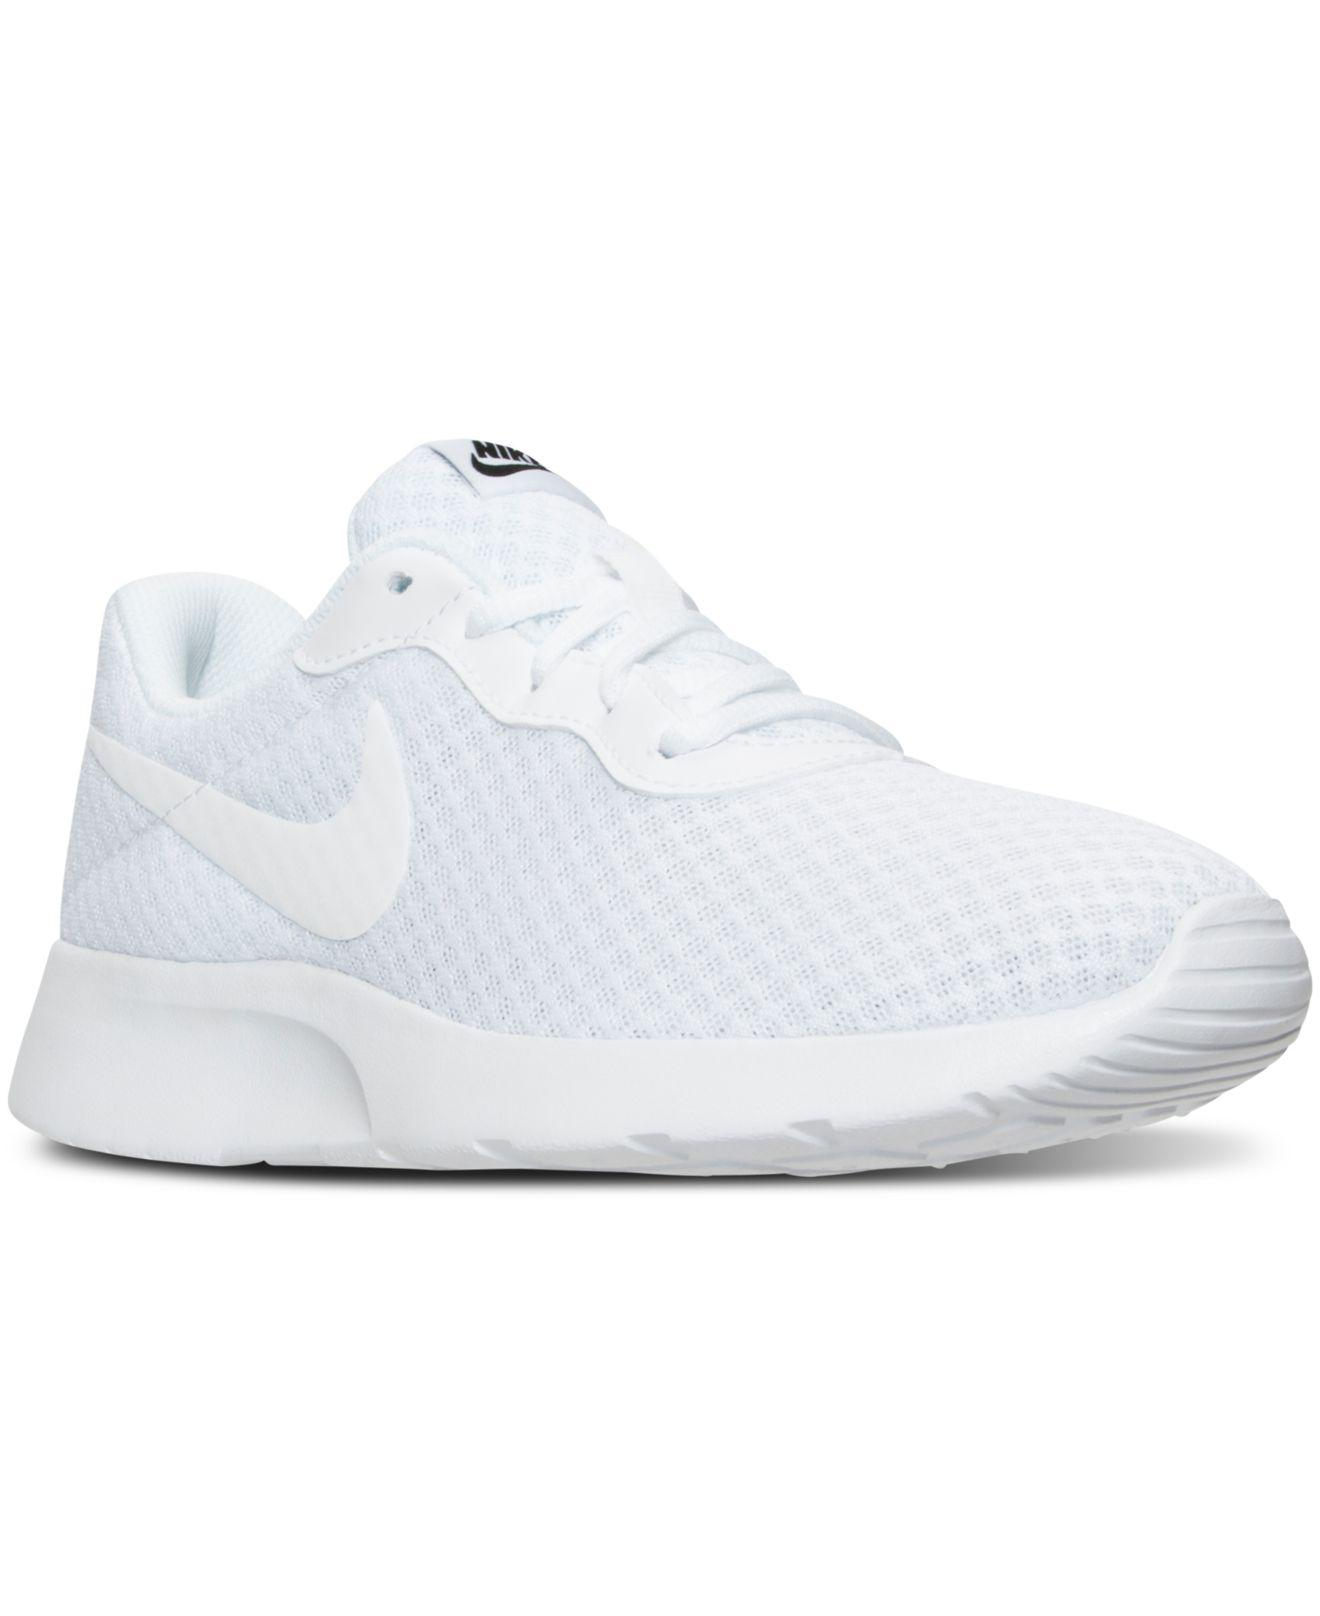 Lyst - Nike Women s Tanjun Casual Sneakers From Finish Line in White 38eb25785d